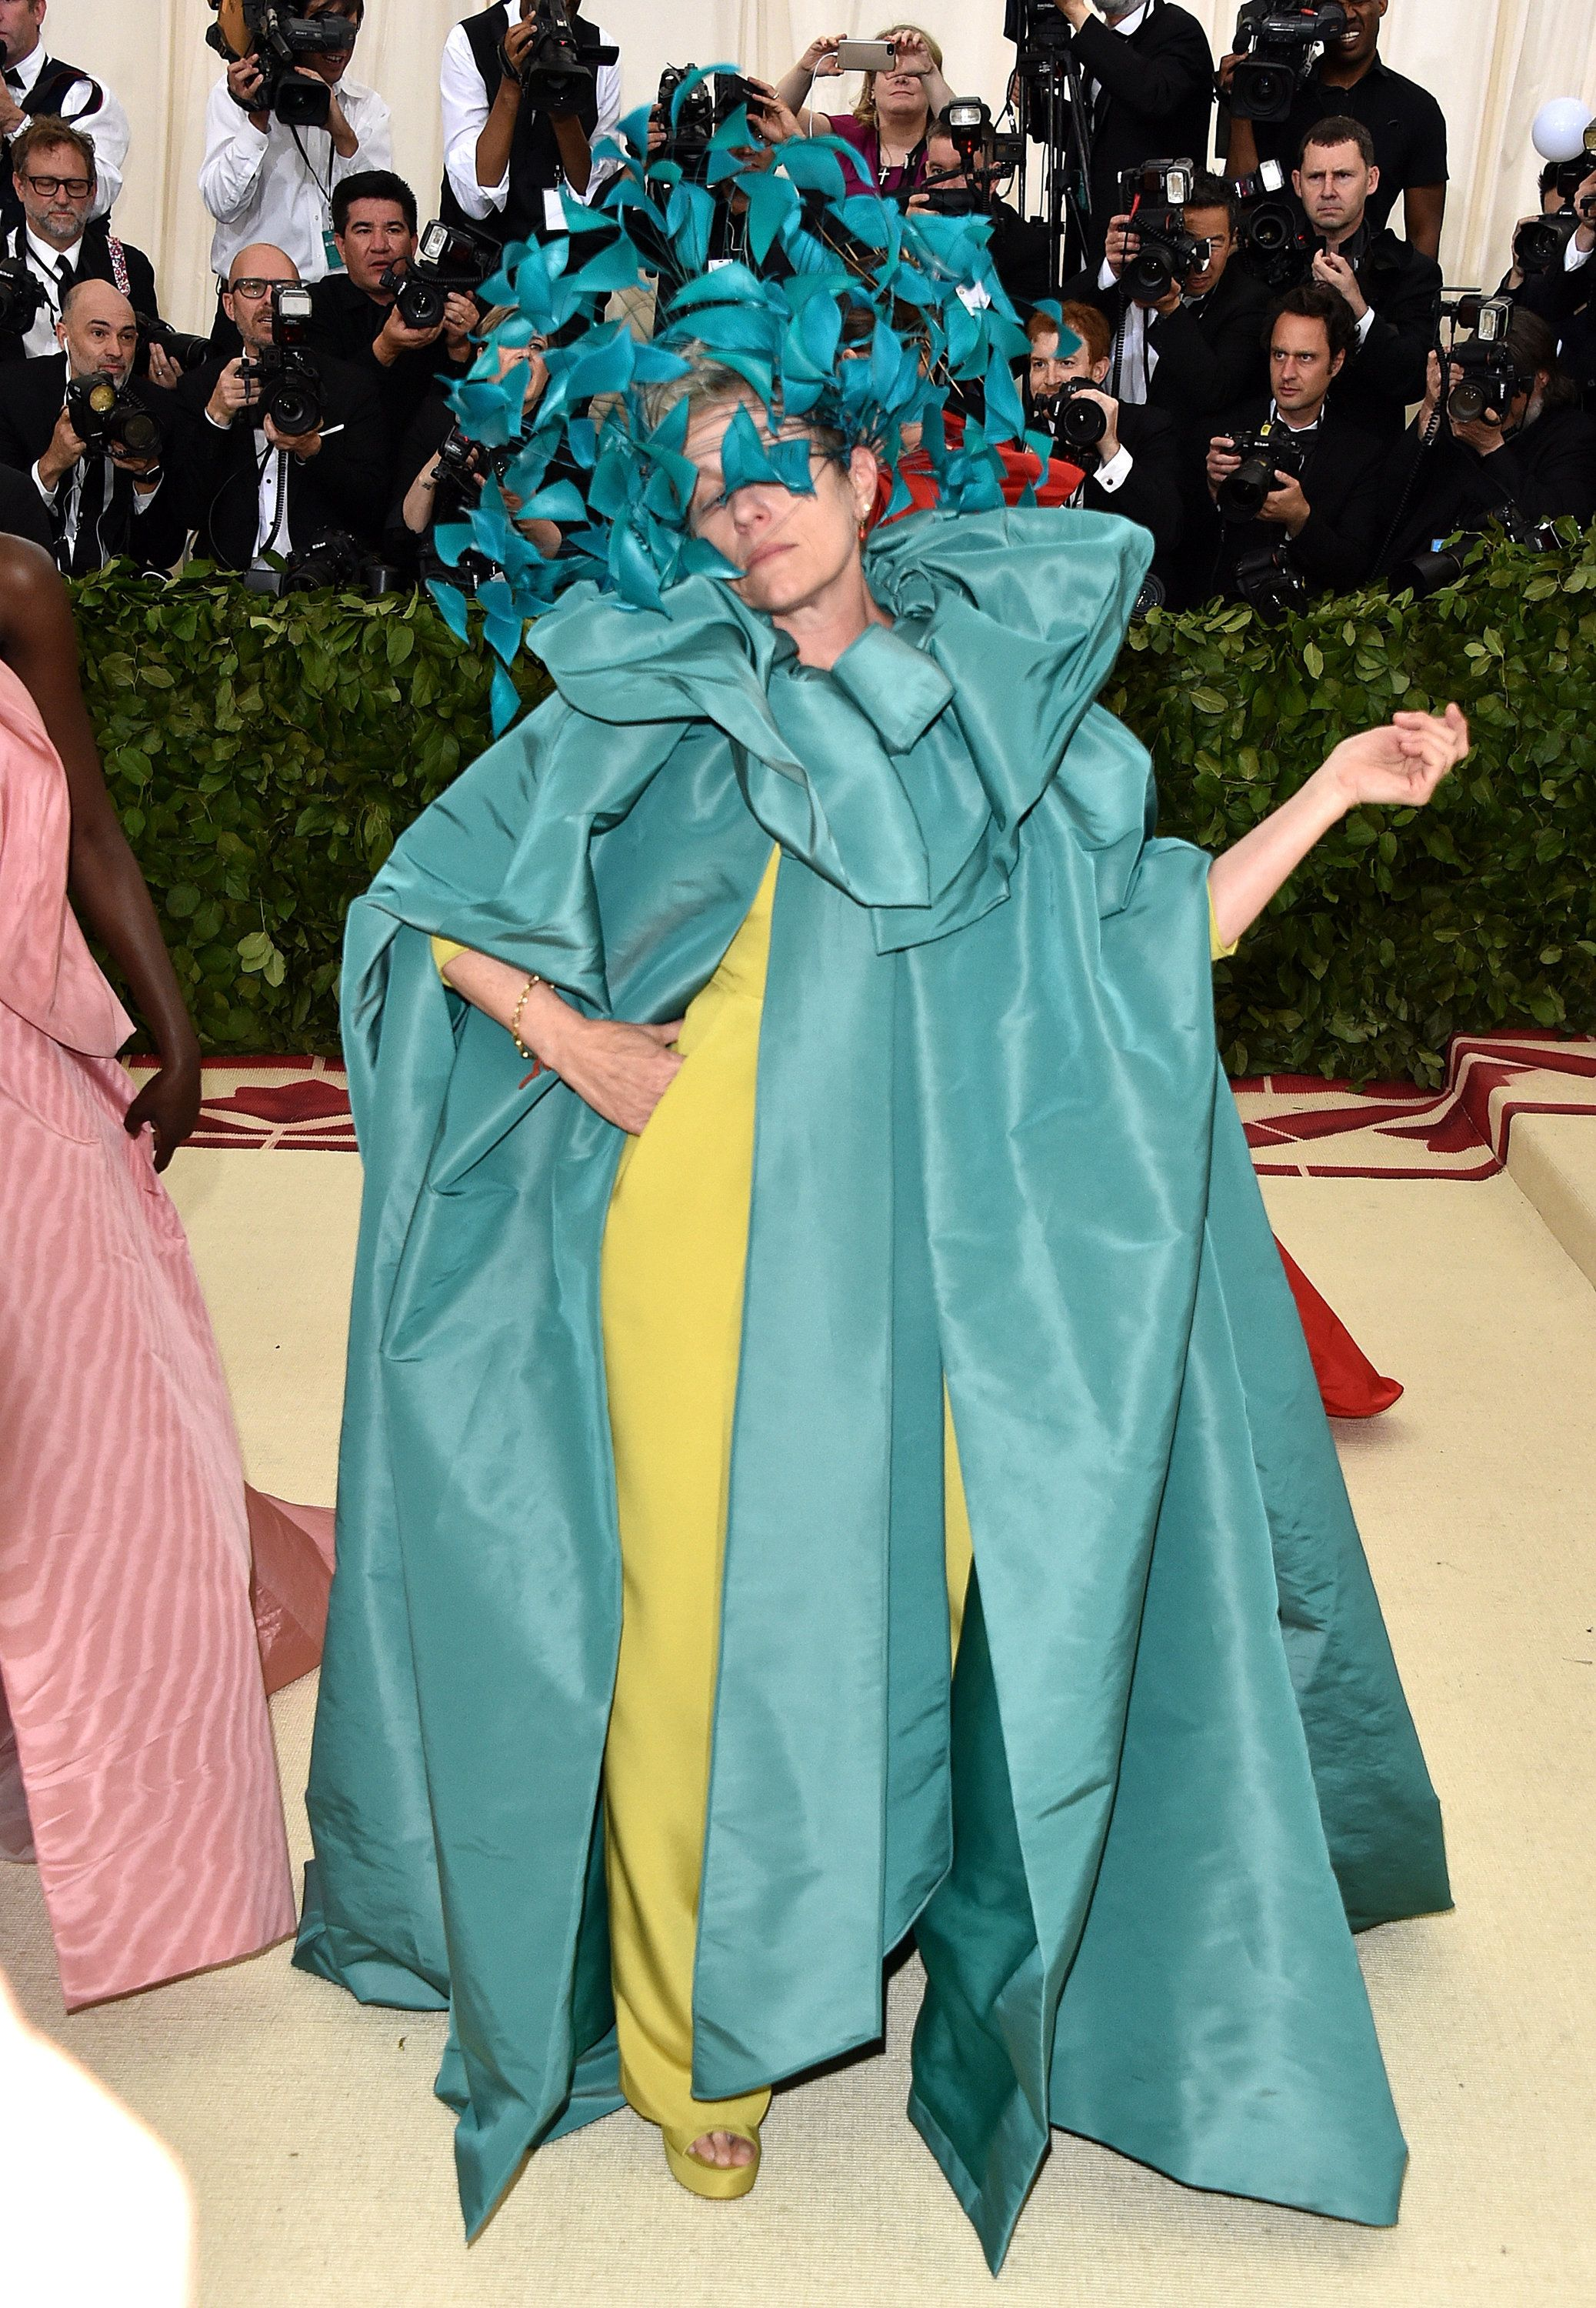 Frances McDormand Had The Absolute Time Of Her Life At The Met